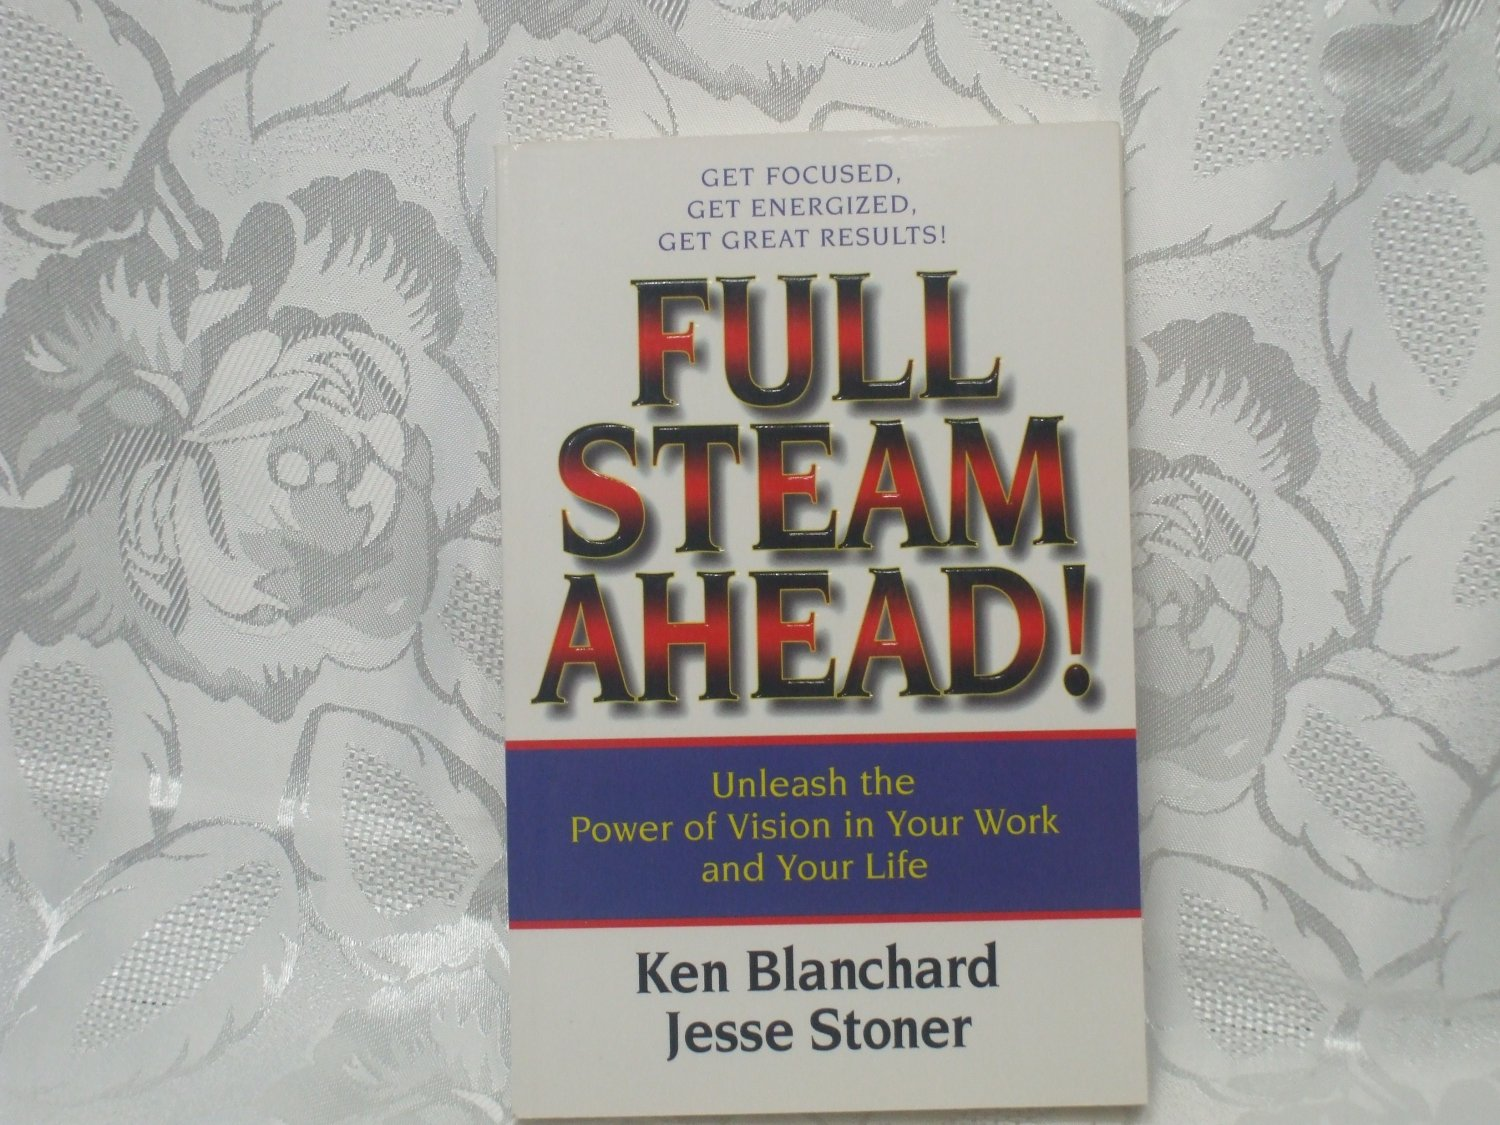 Full steam ahead unleash the power of vision in your work and your life Ken Blanchard